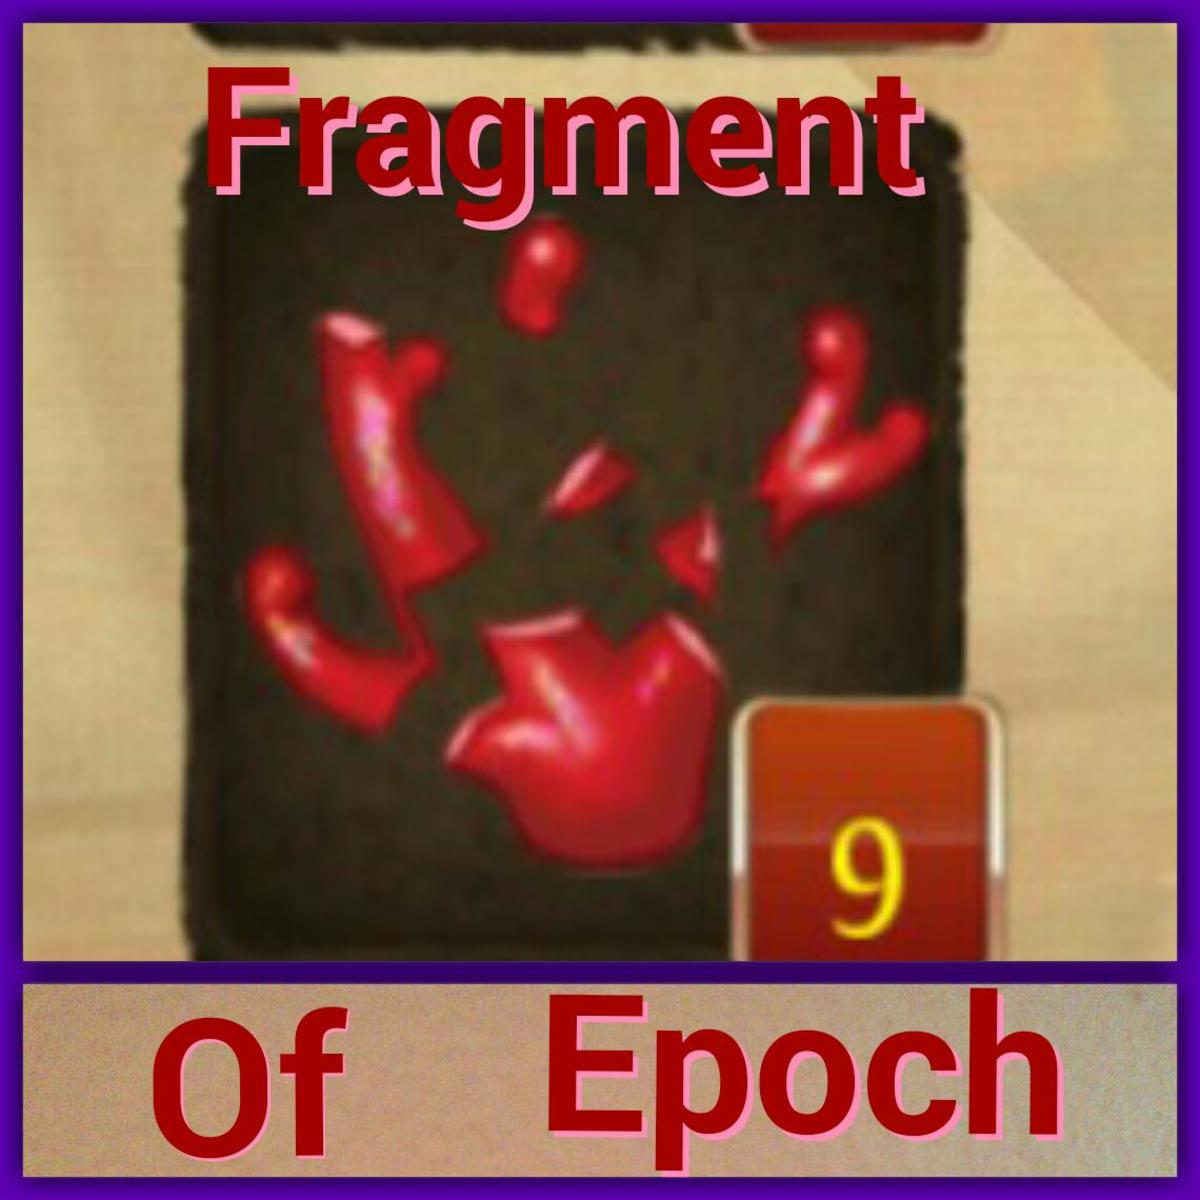 These nine Fragment of Epoch can be crafted into three Essence of Epoch.